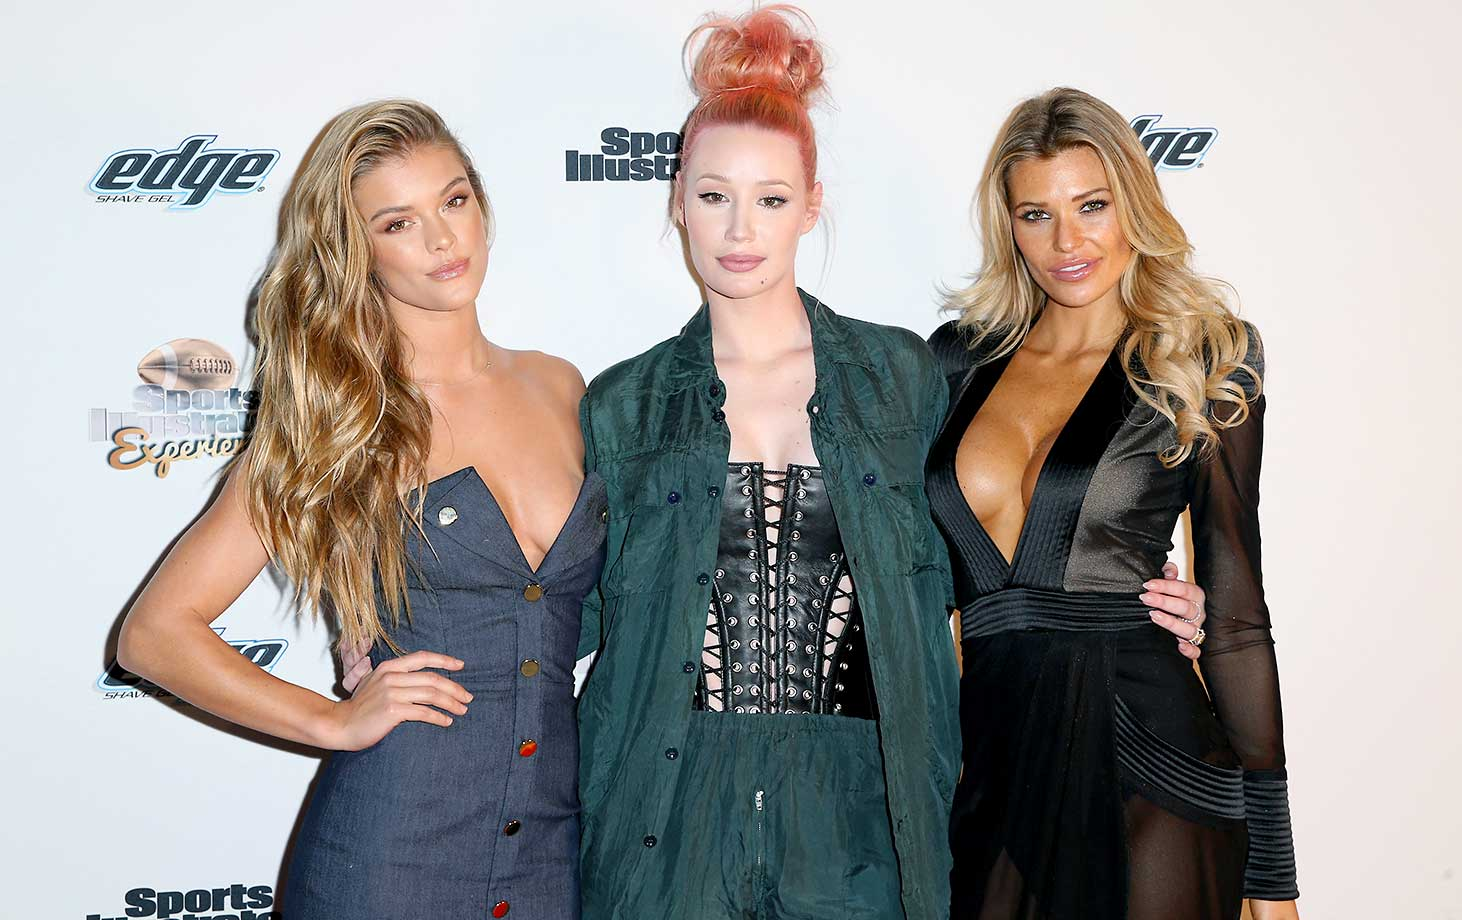 Nina Agdal, rapper Iggy Azalea, and model Samantha Hoopes :: Sports Illustrated Experience